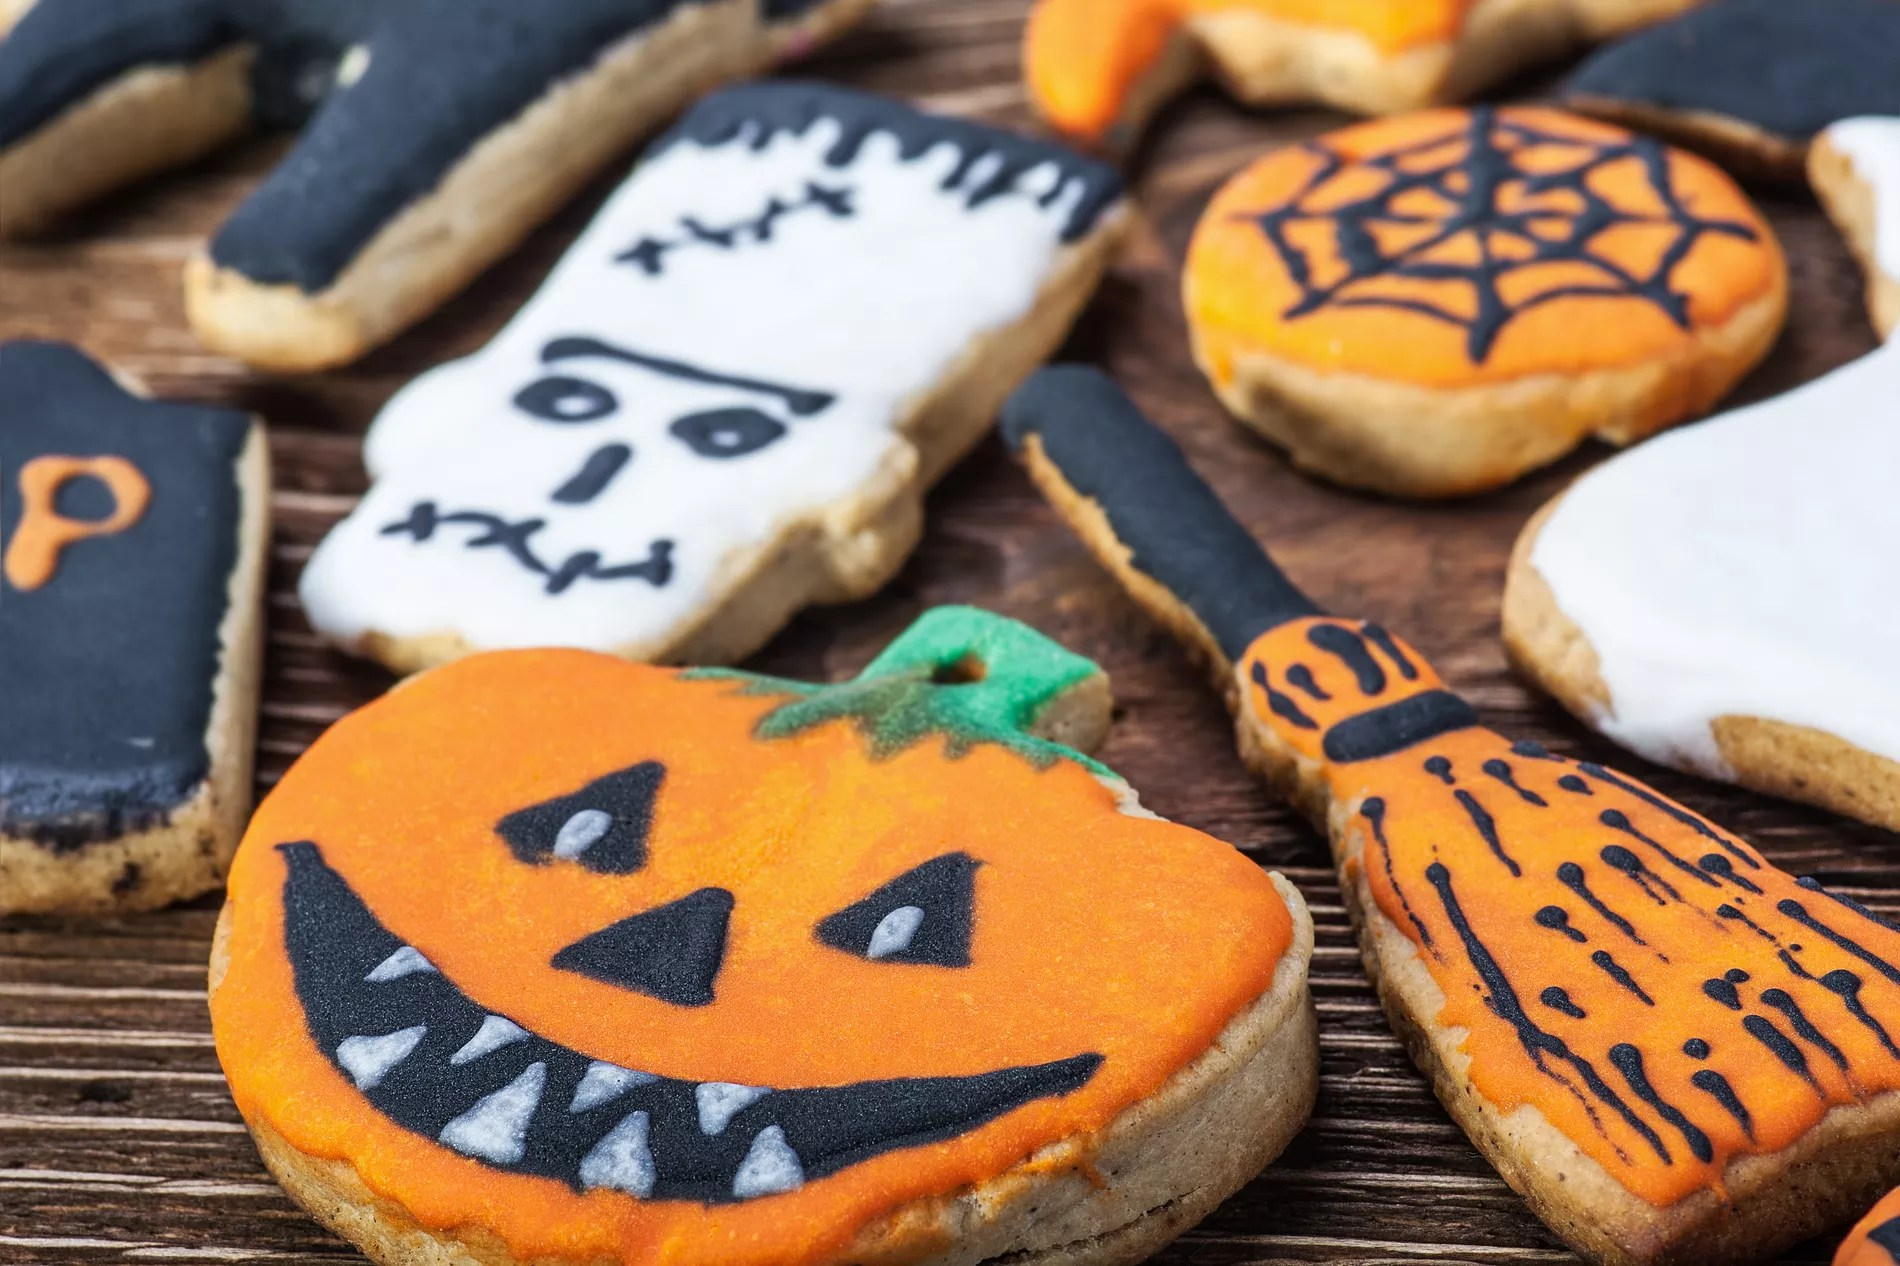 Recettes Faciles Pour Halloween Biscuits D Halloween